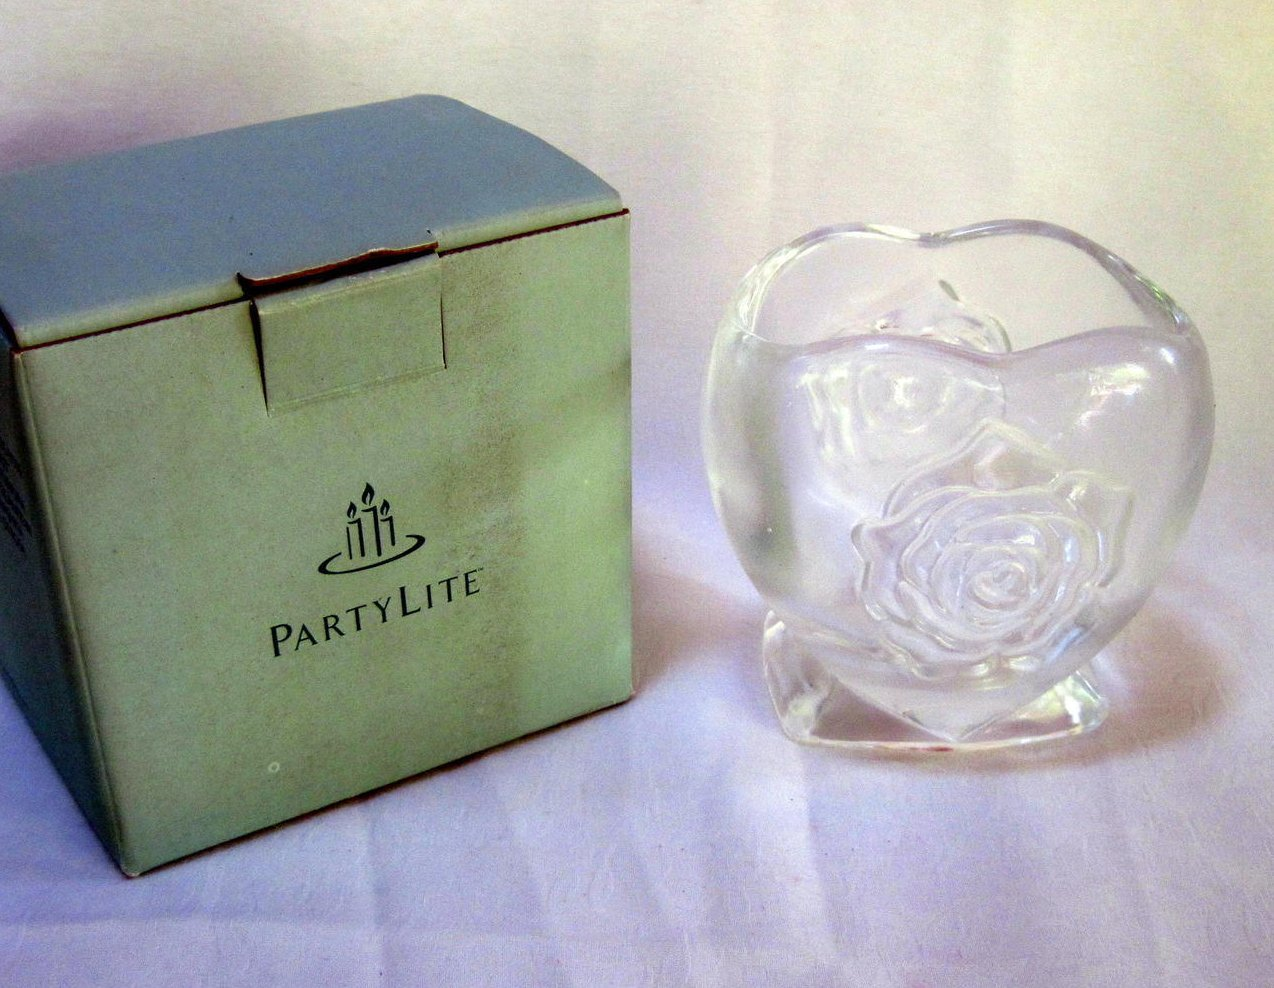 Partylite rosehearts tealight or votive candle holder p7256 for Partylite dekoration